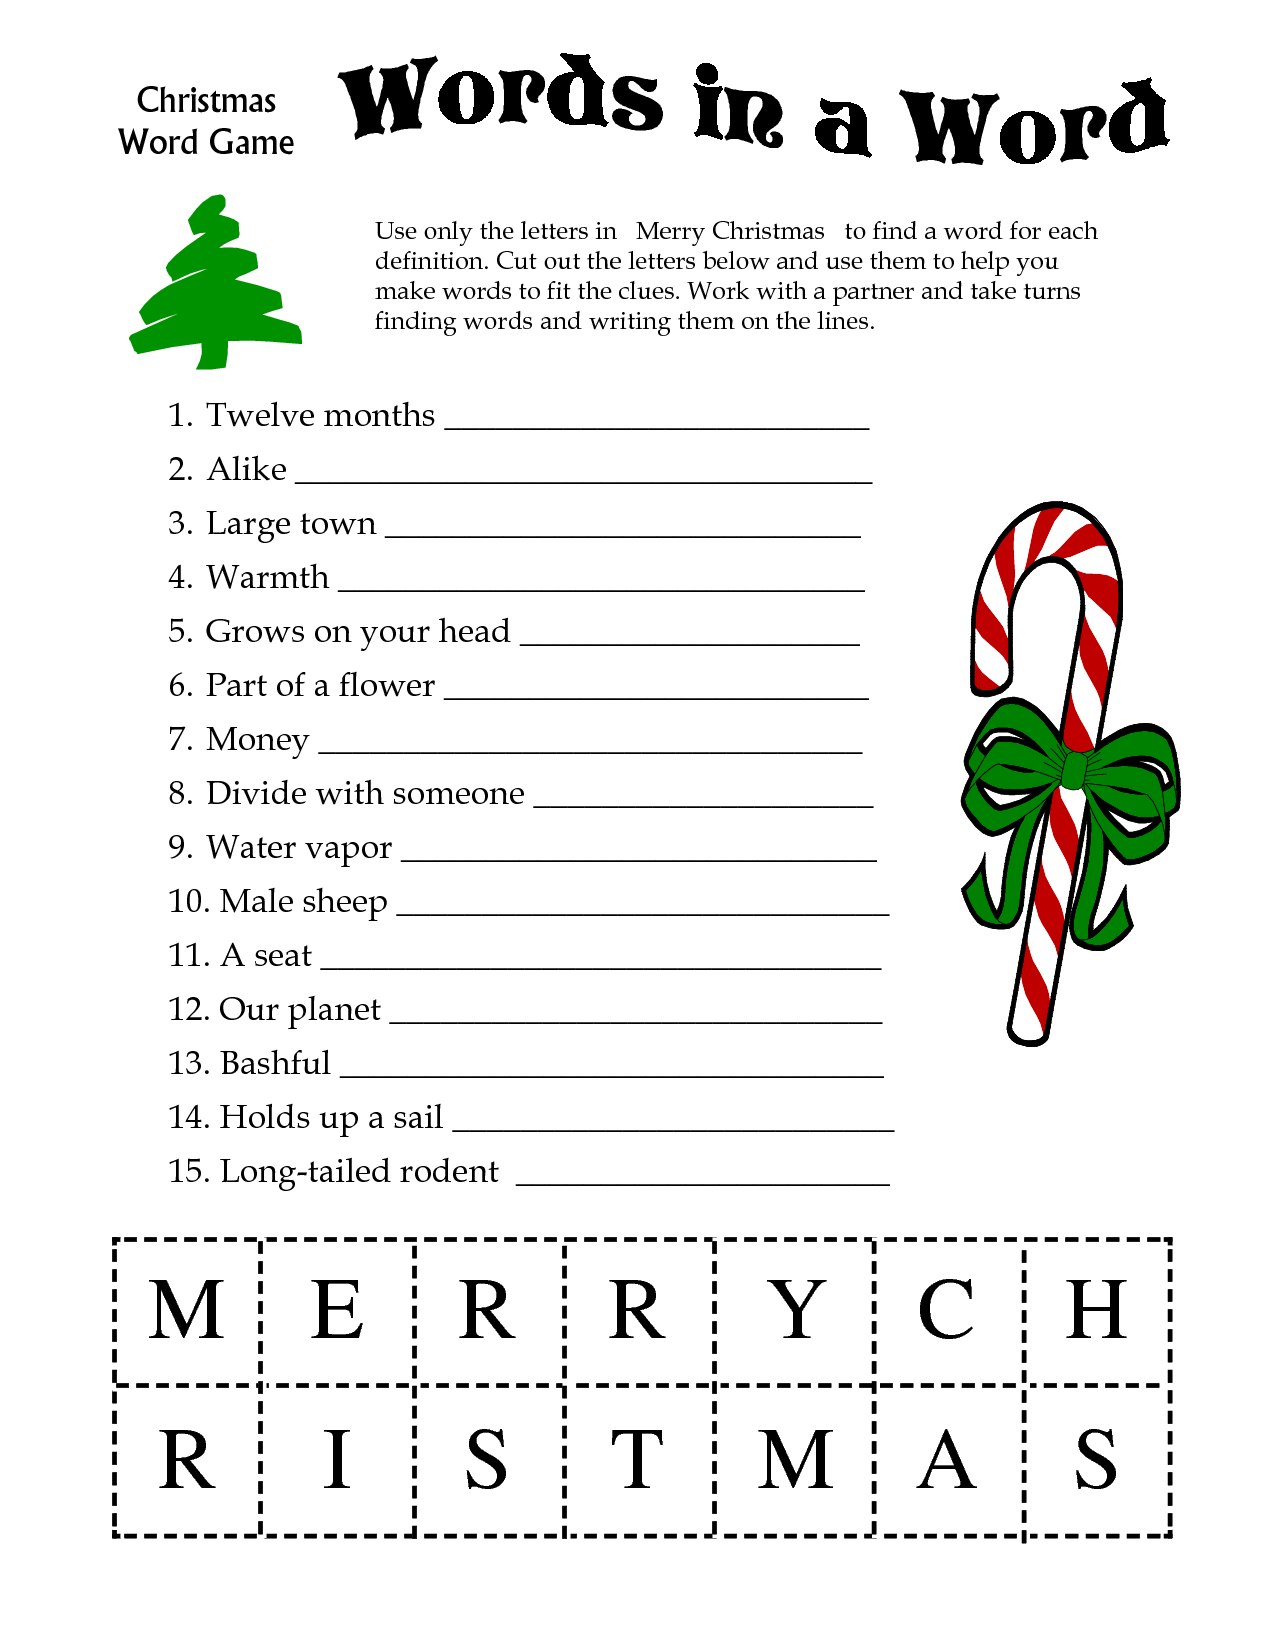 5 Images Of Free Printable Christmas Word Games | Printablee - Free Printable Christmas Puzzles